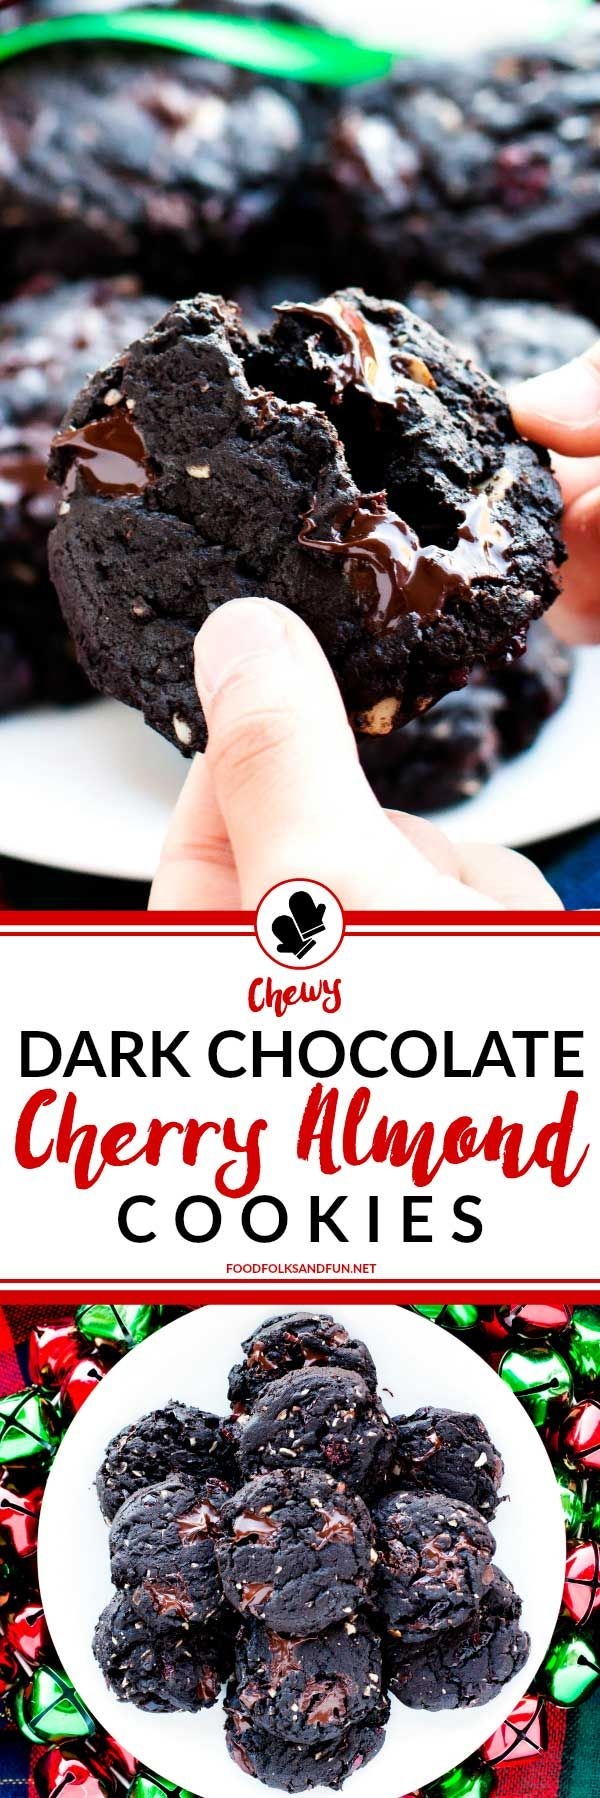 These Dark Chocolate Cherry Cookies with Almonds are chewy, fudgy, and ...